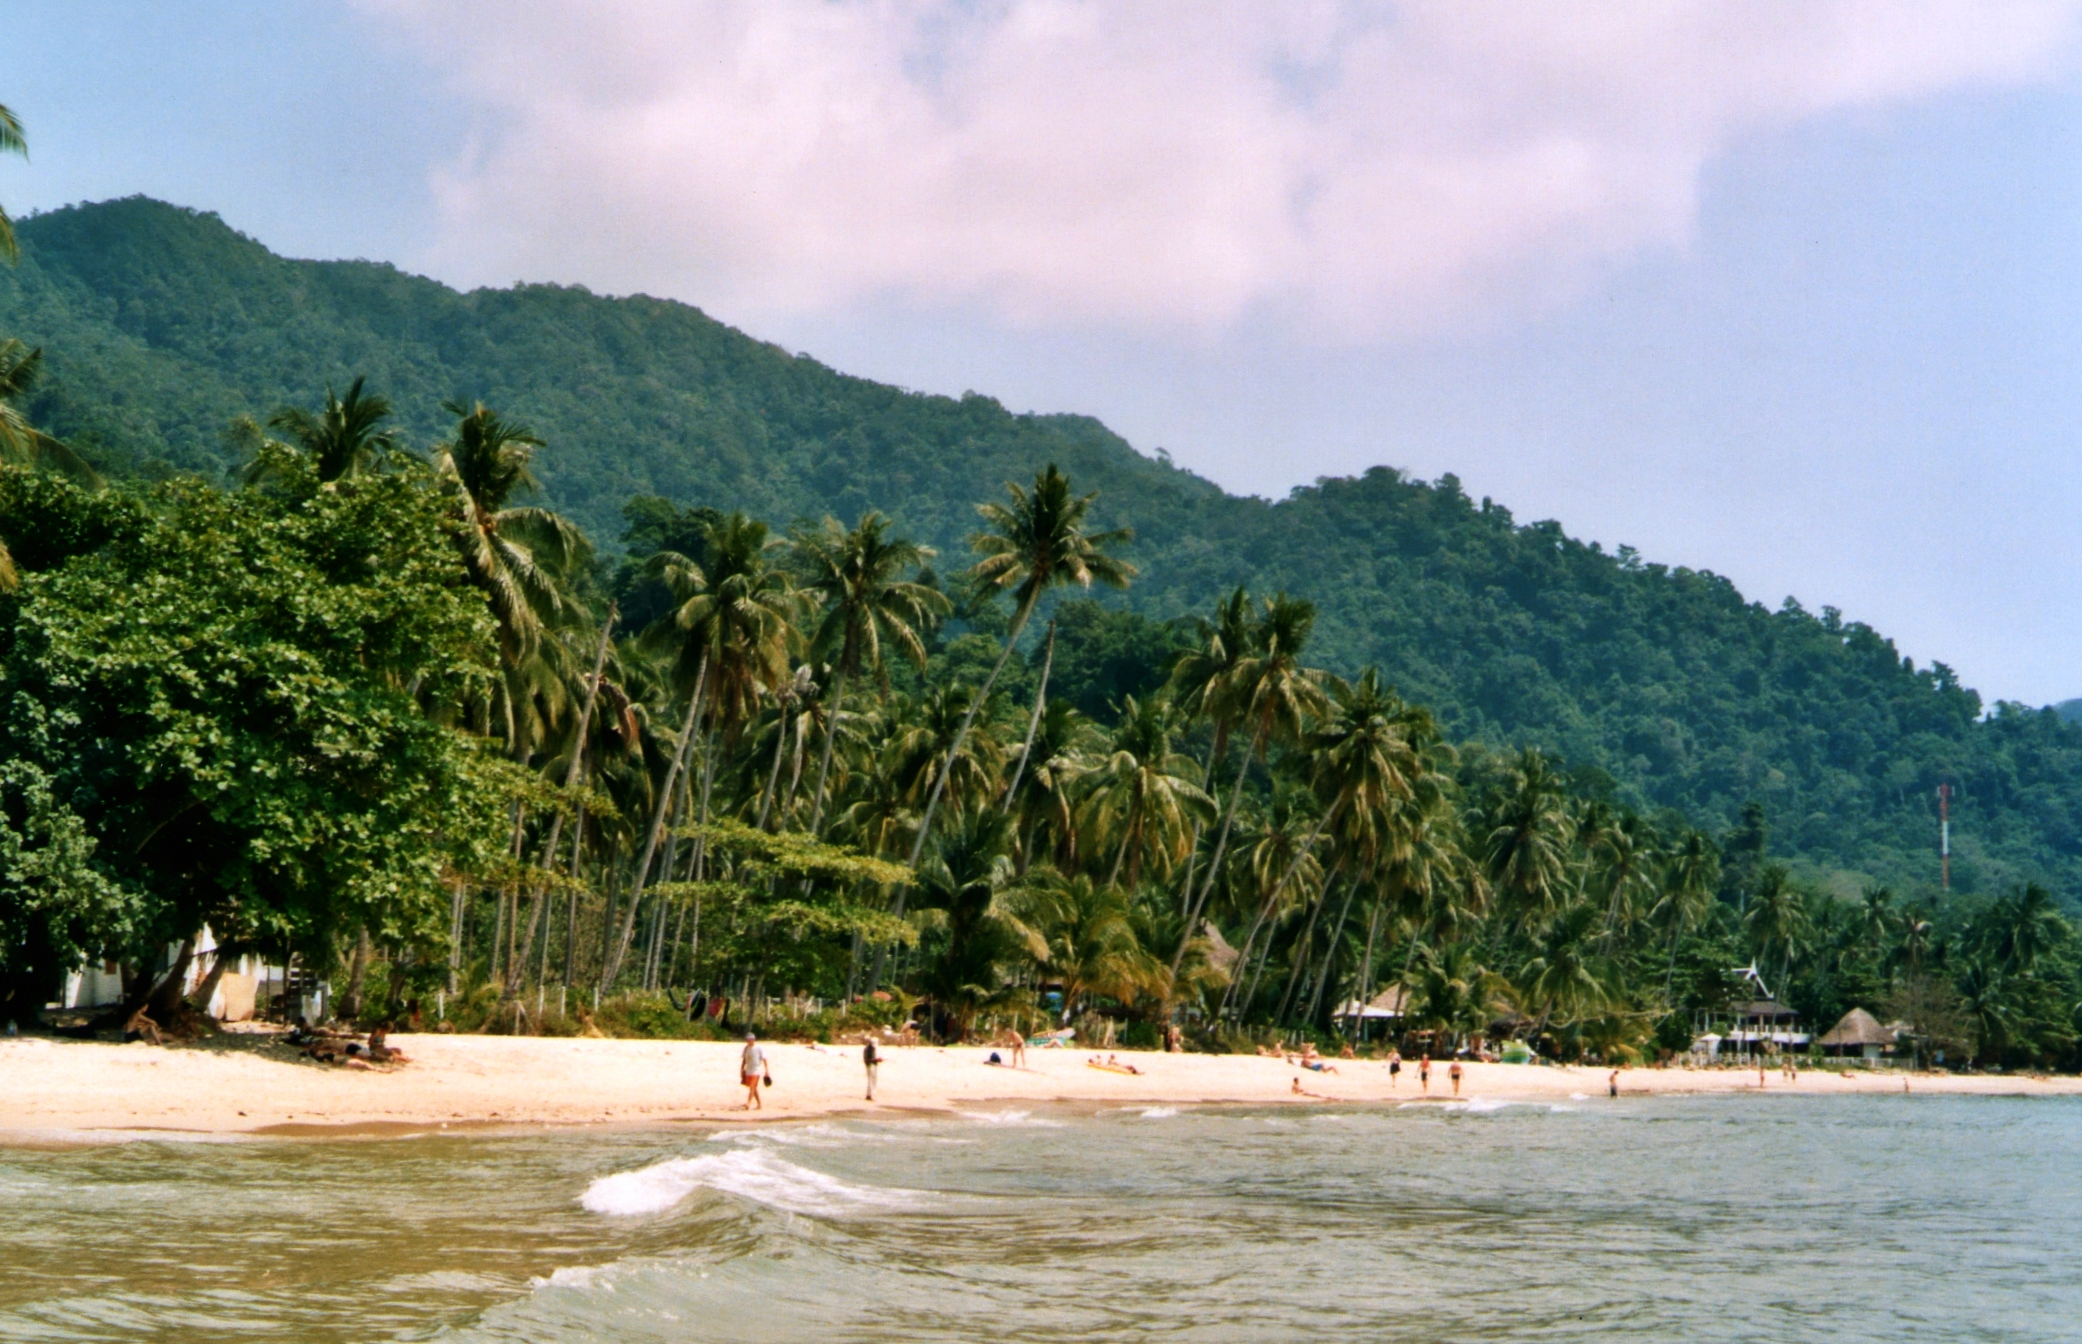 Tropical Lonely Beach, surrounded by palm trees in Koh Chang's west coast, Thailand